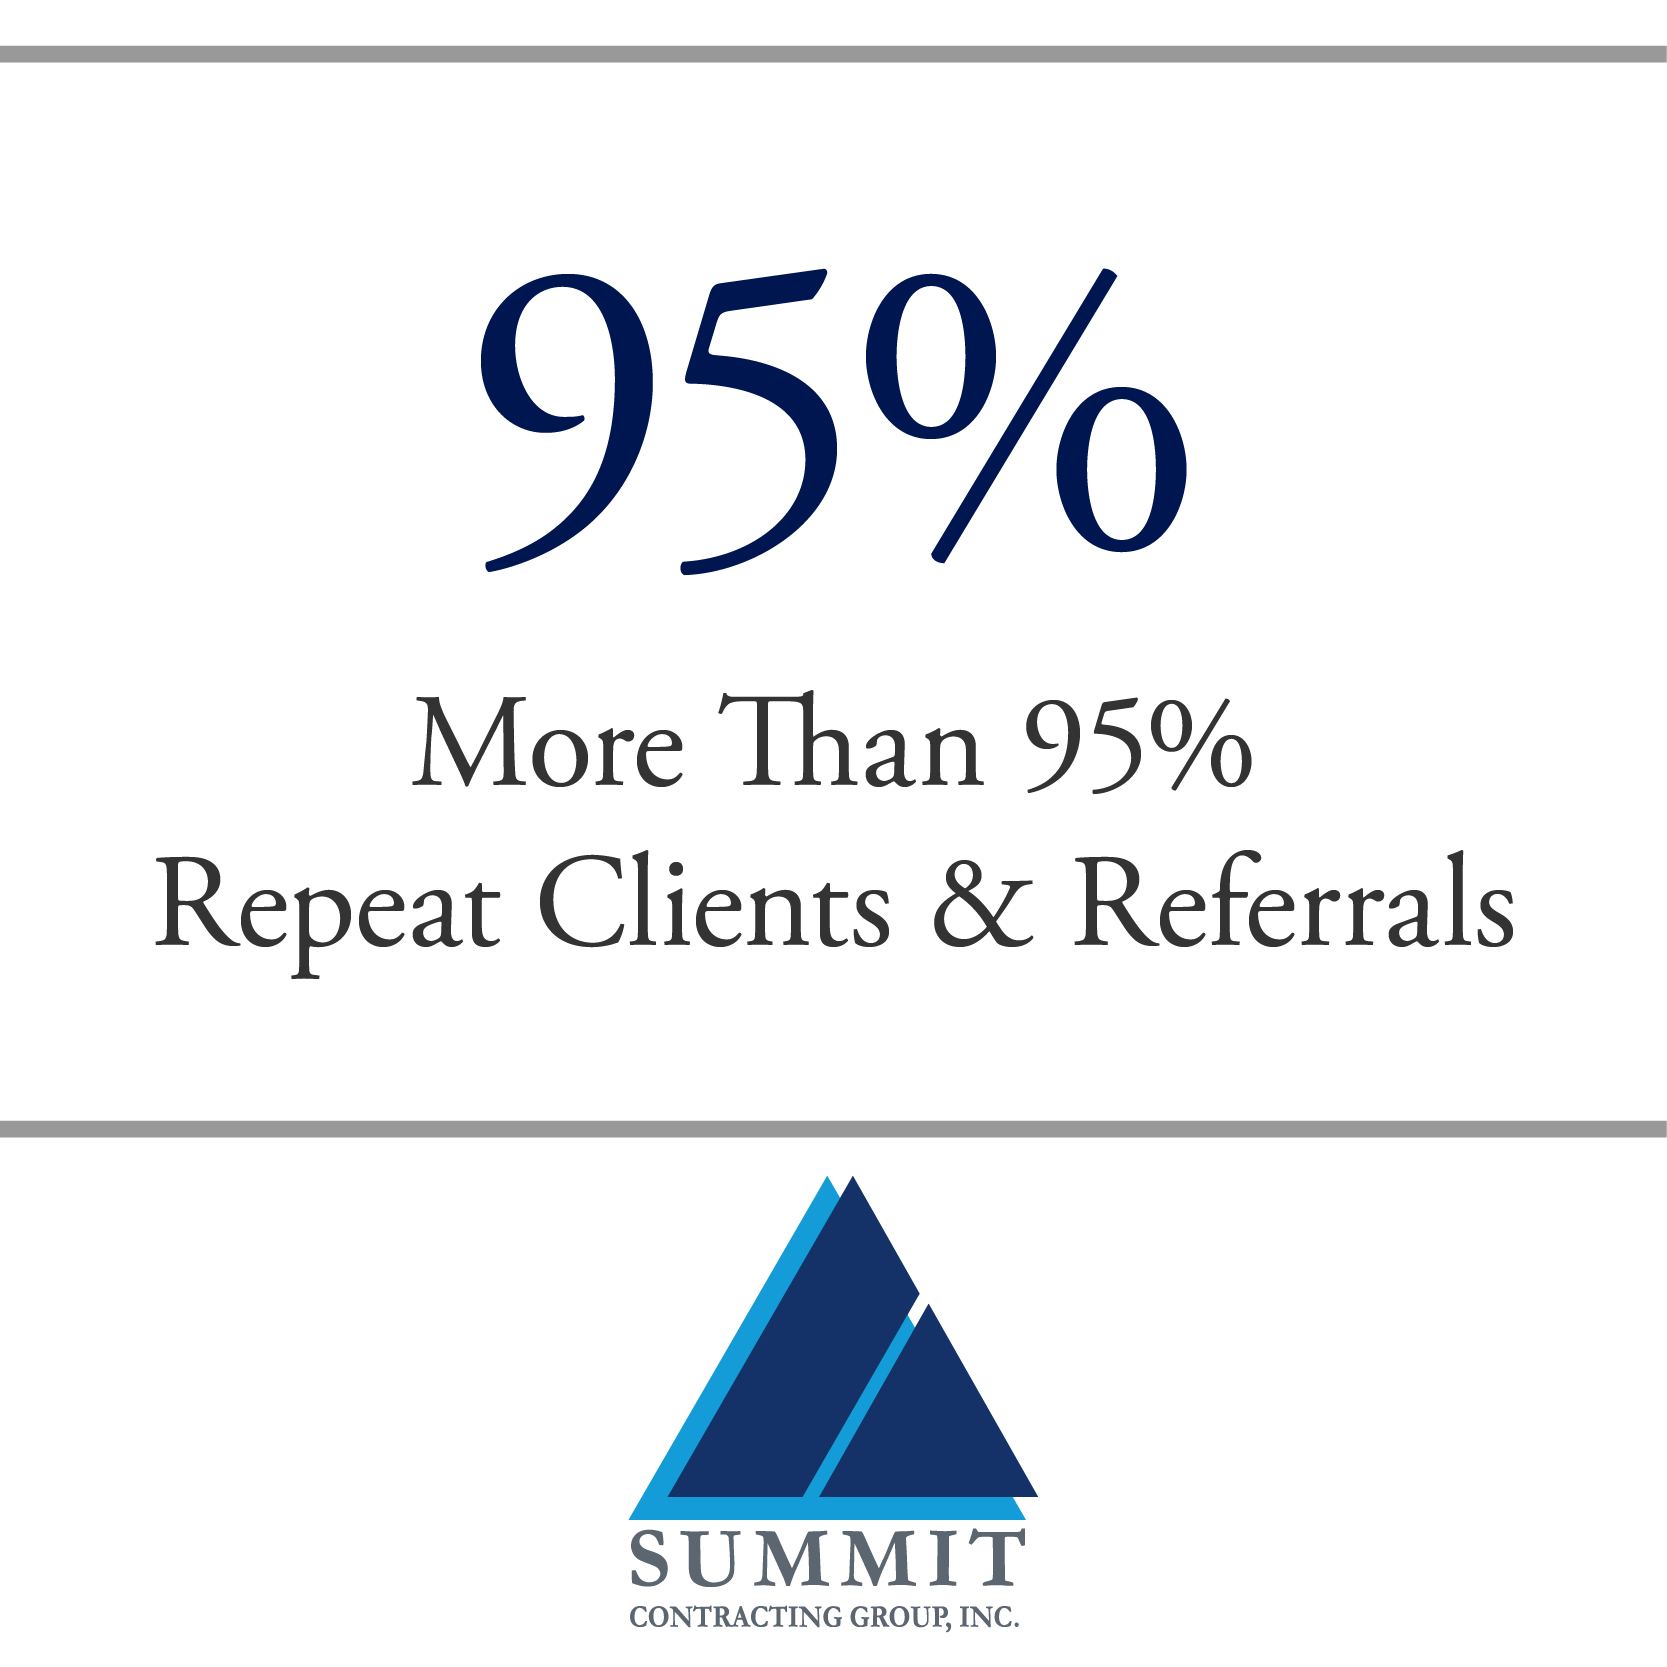 More than 95% Repeat Clients and Referrals